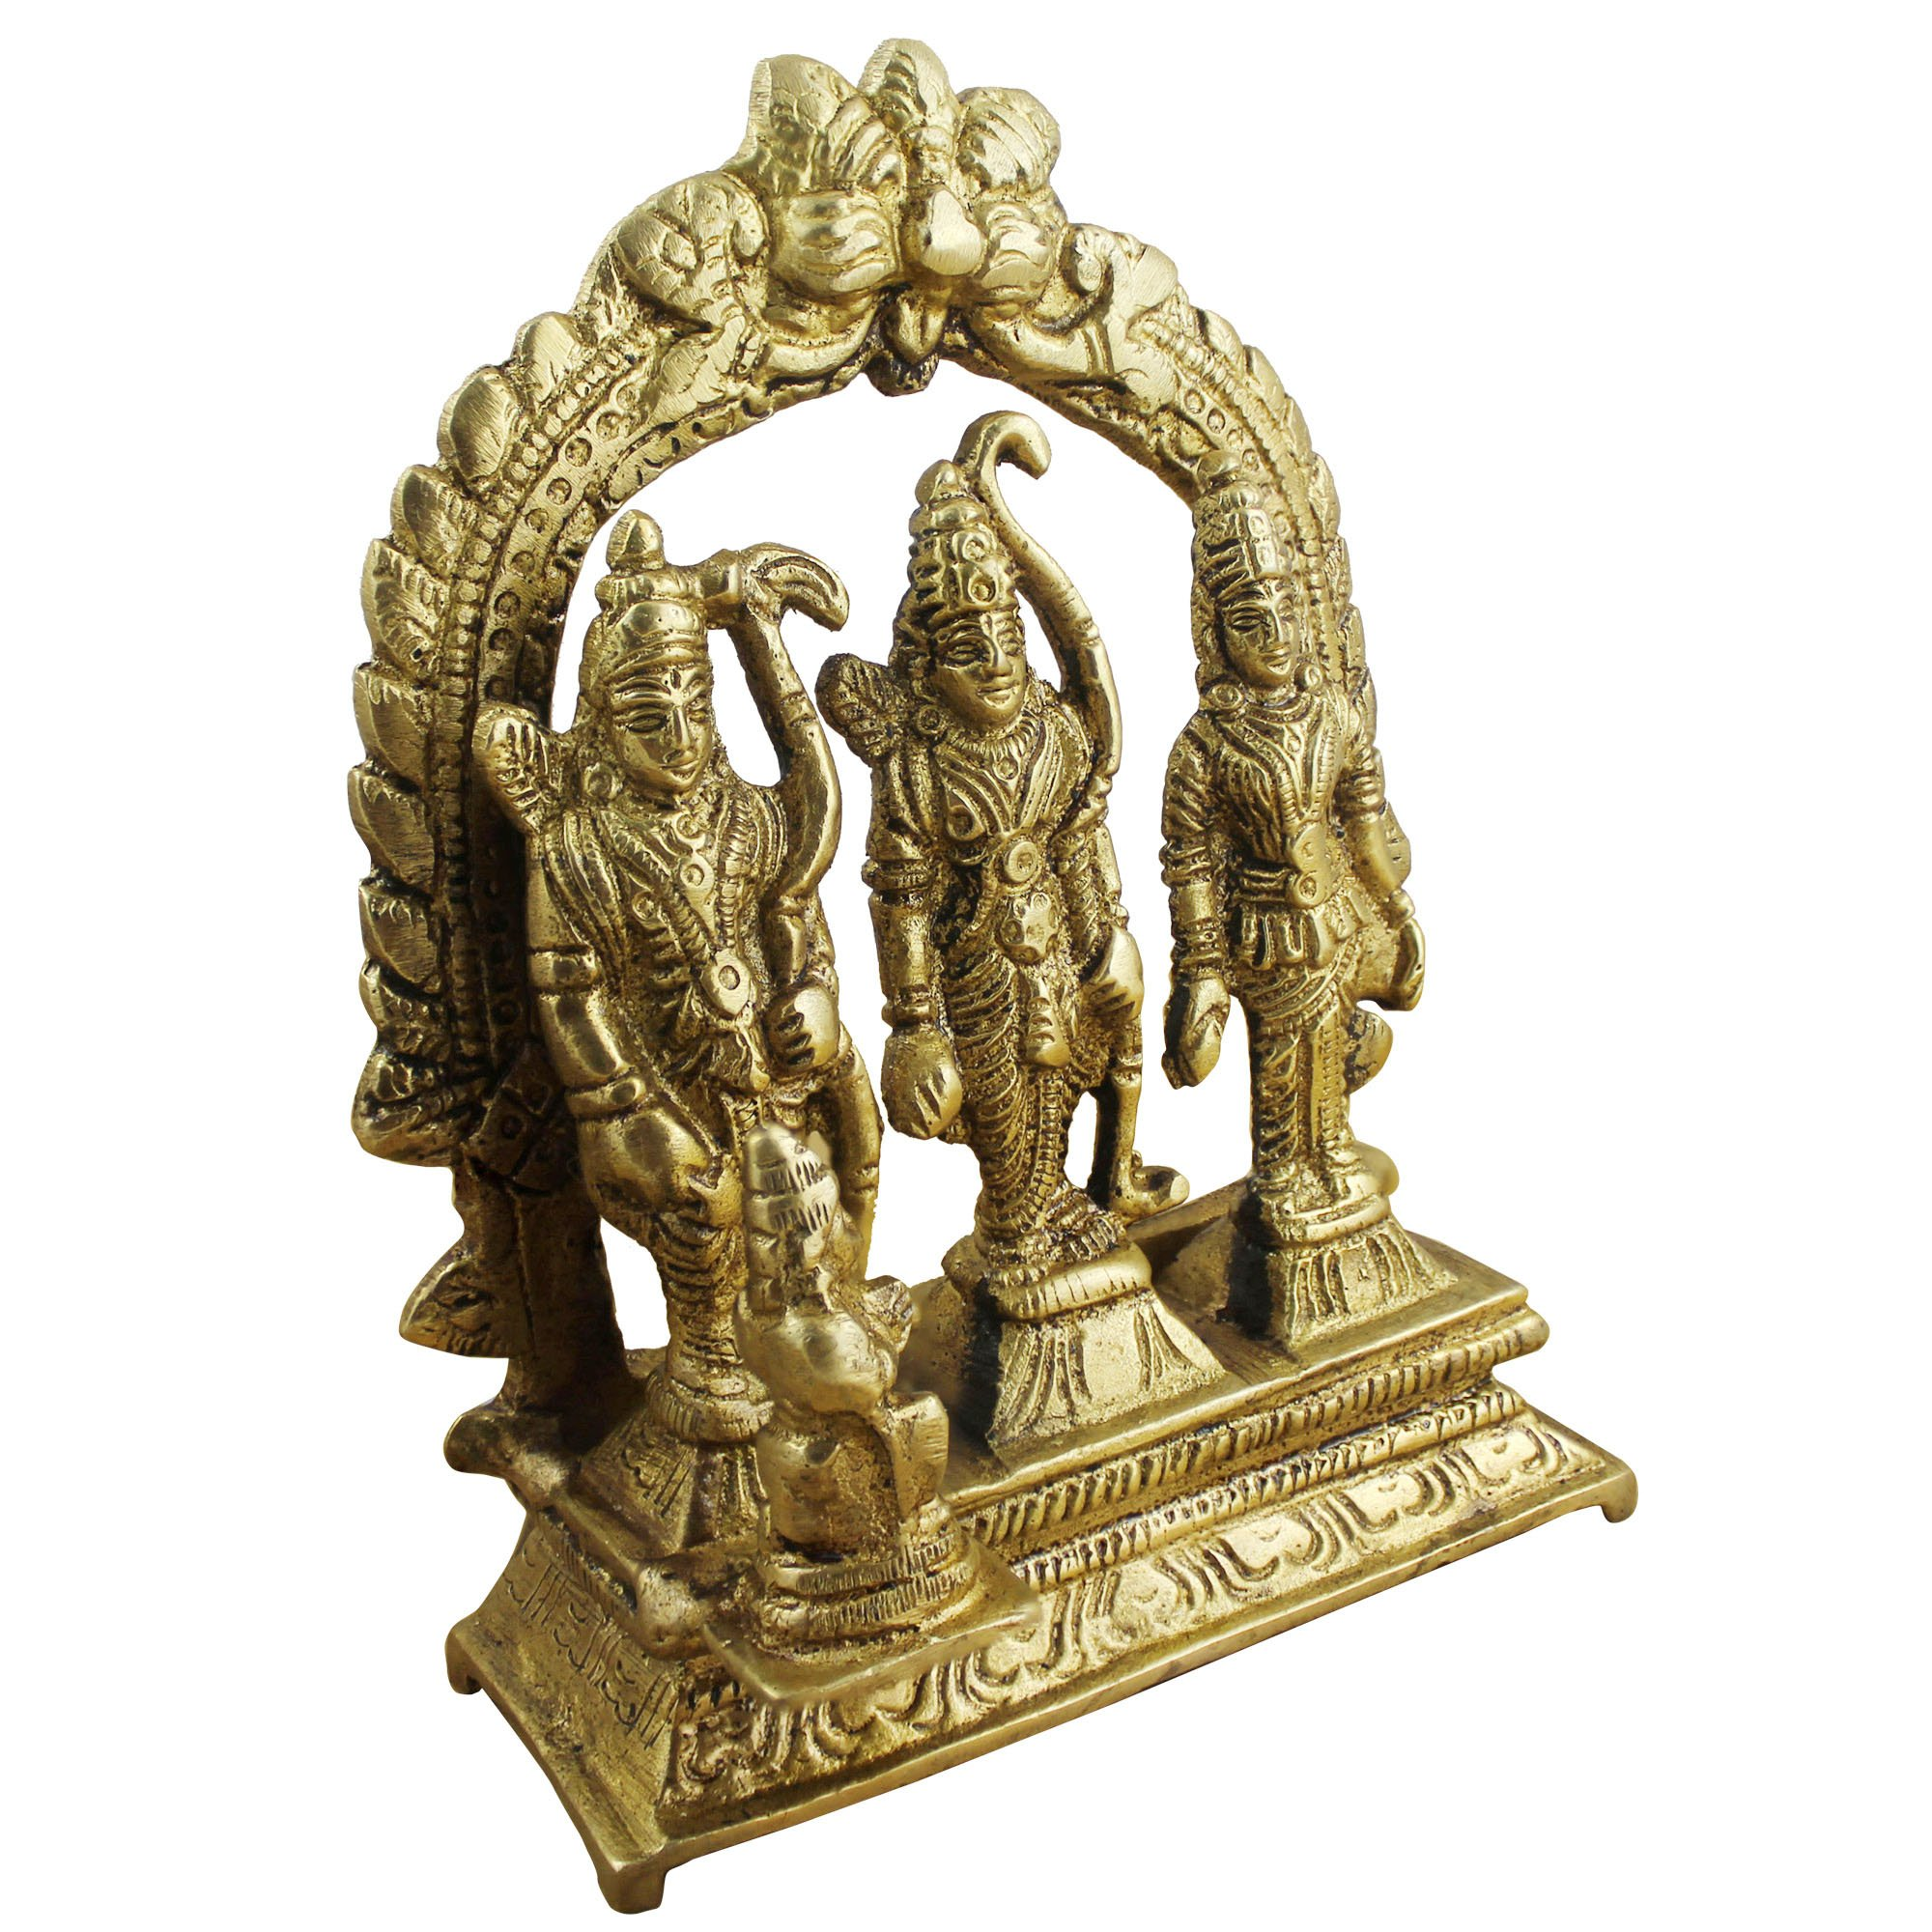 Hindu Gods and Goddesses - Lord Rama Laxman and Sita Religious Indian Art Sculpture - 3.1'' x 3'' x 1'' by RoyaltyLane (Image #2)